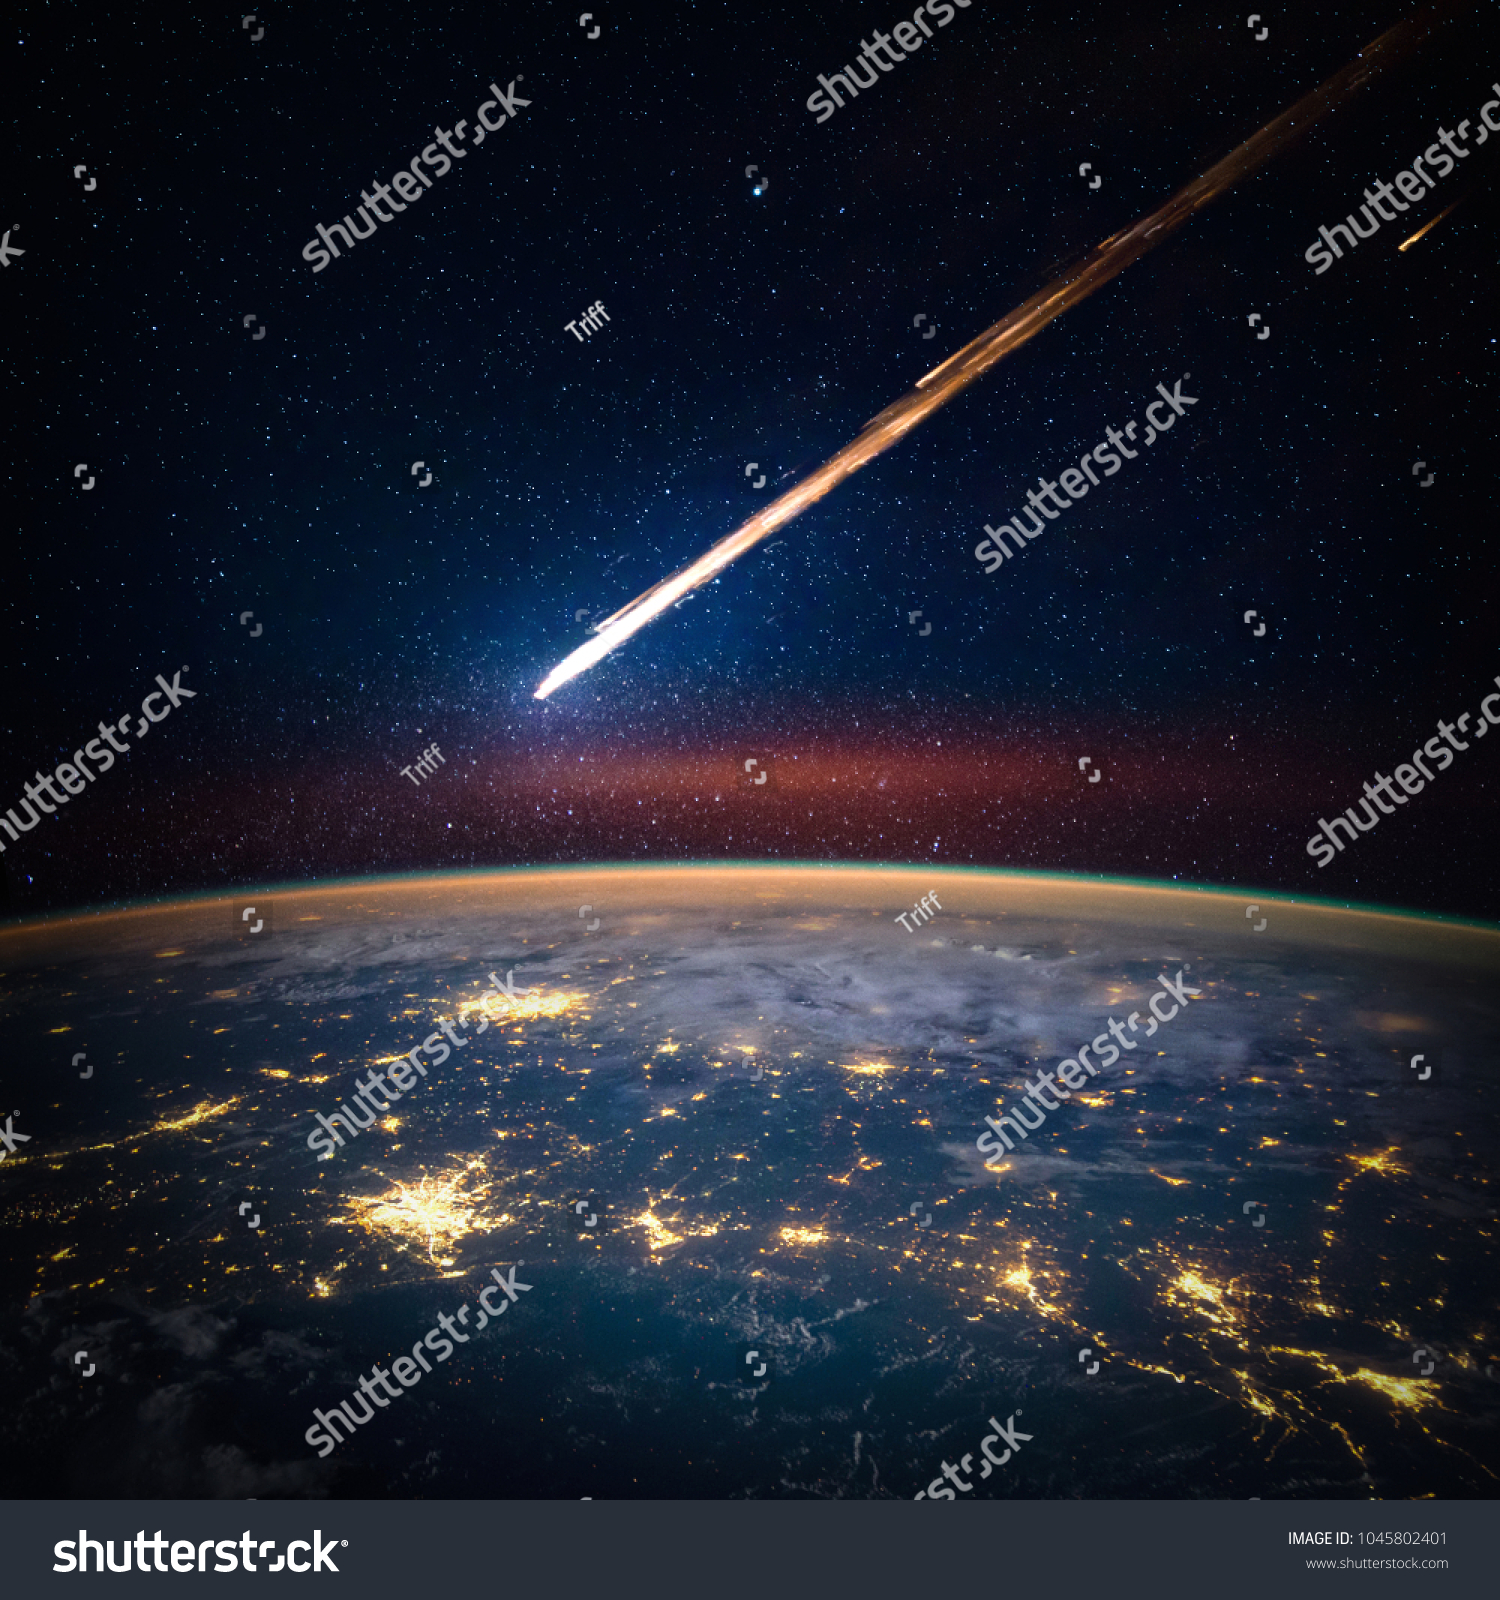 Falling Meteorite Asteroid Comet On Earth Stock Photo (Edit Now ...